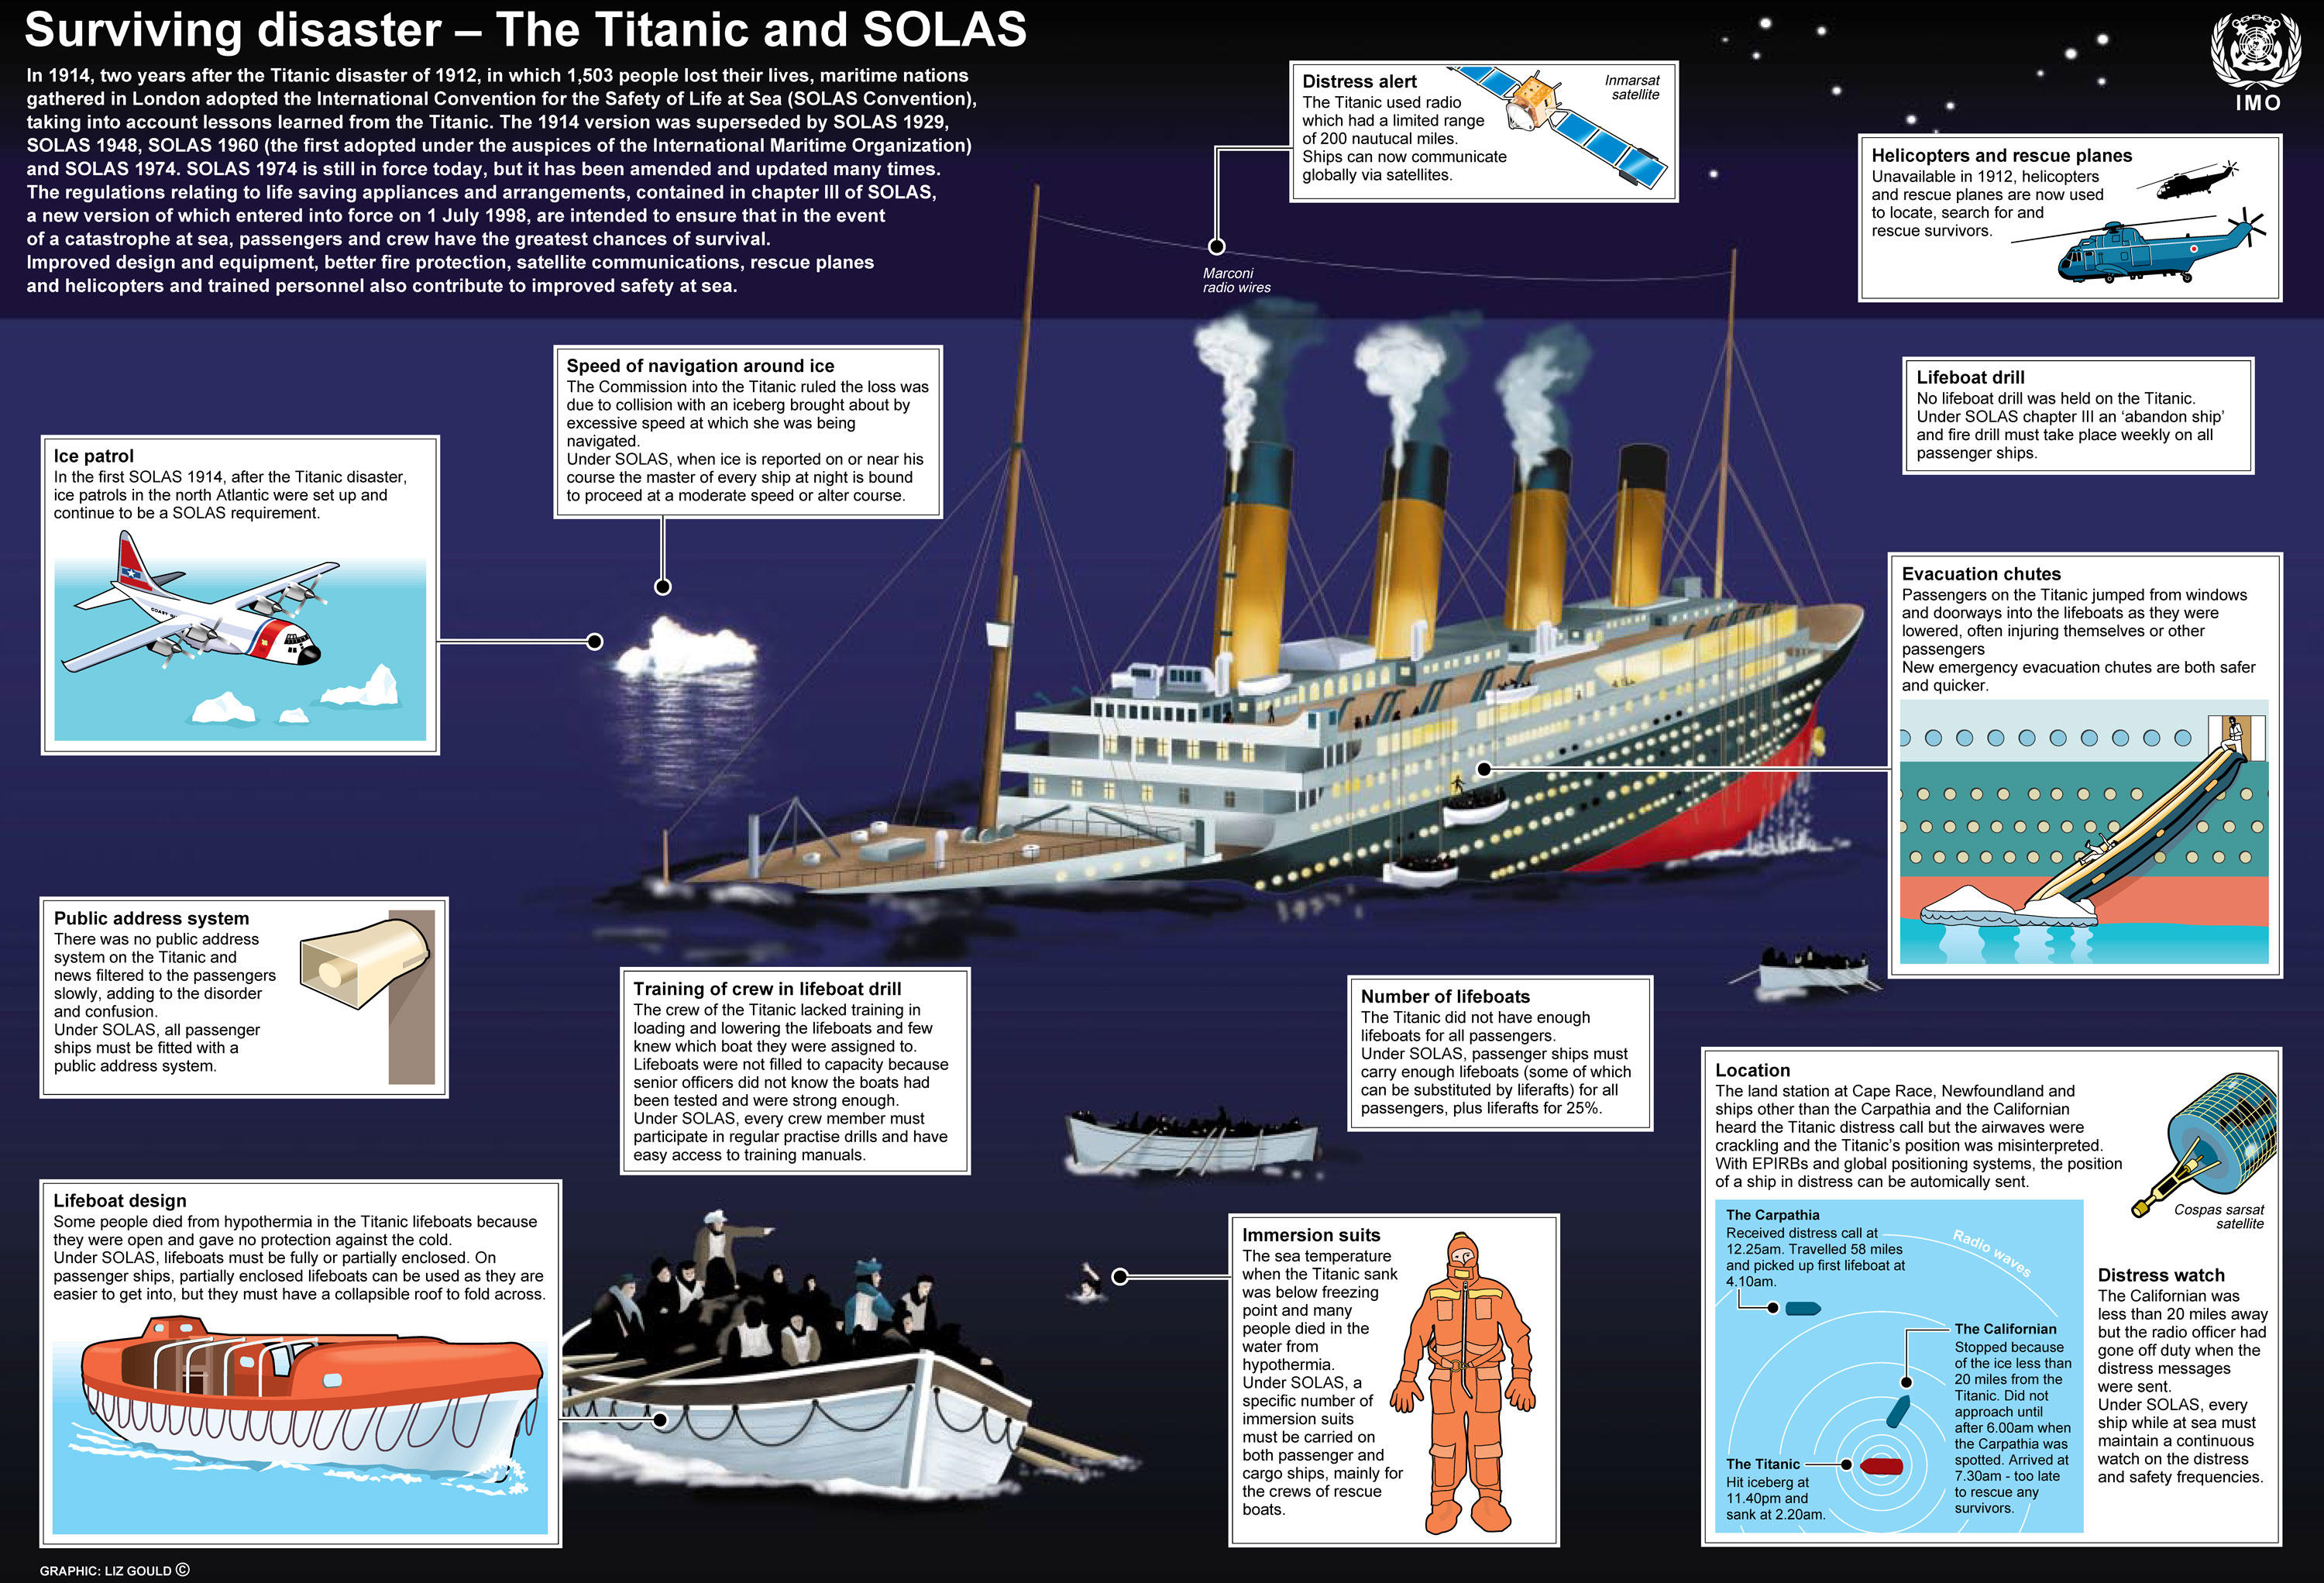 The TITANIC and SOLAS (click to enlarge)